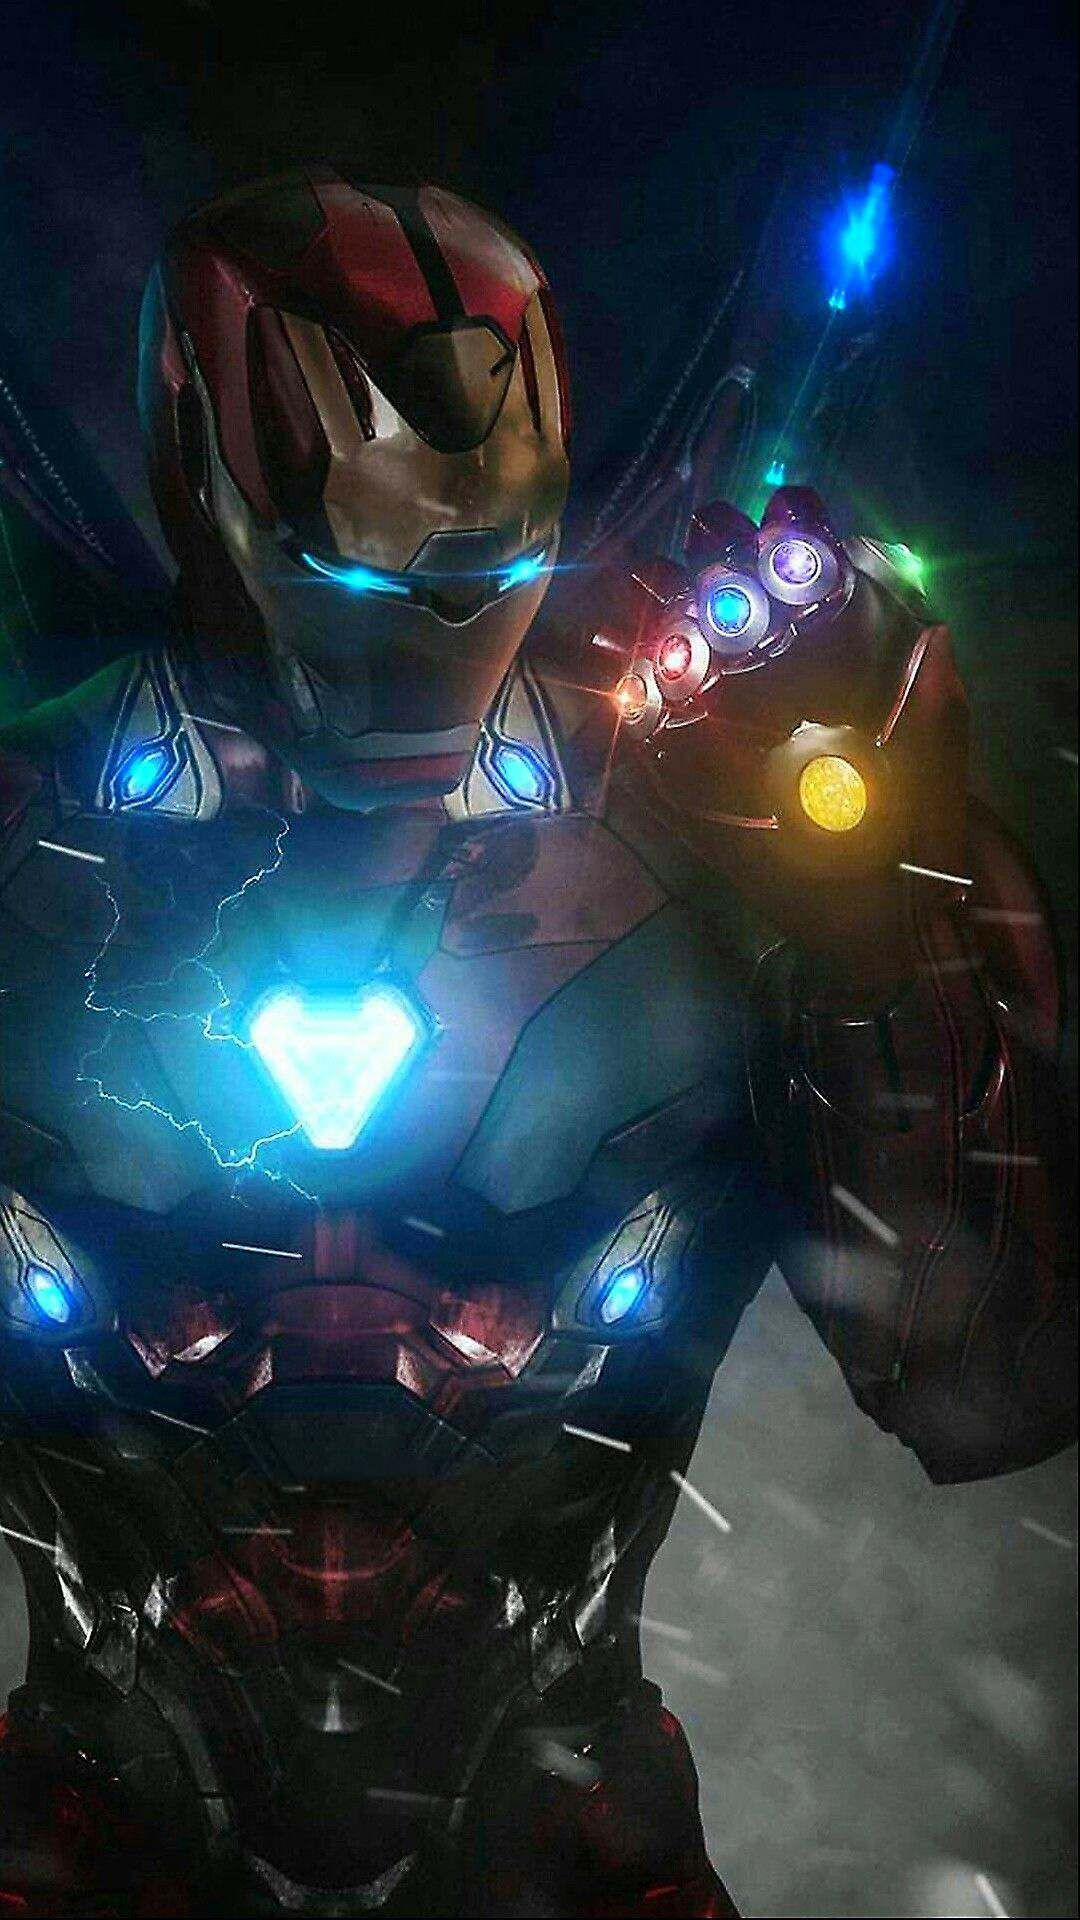 The Iron Man Endgame Fate Concludes After A 10 Year Journey Iron Man Wallpaper Iron Man Avengers Marvel Artwork